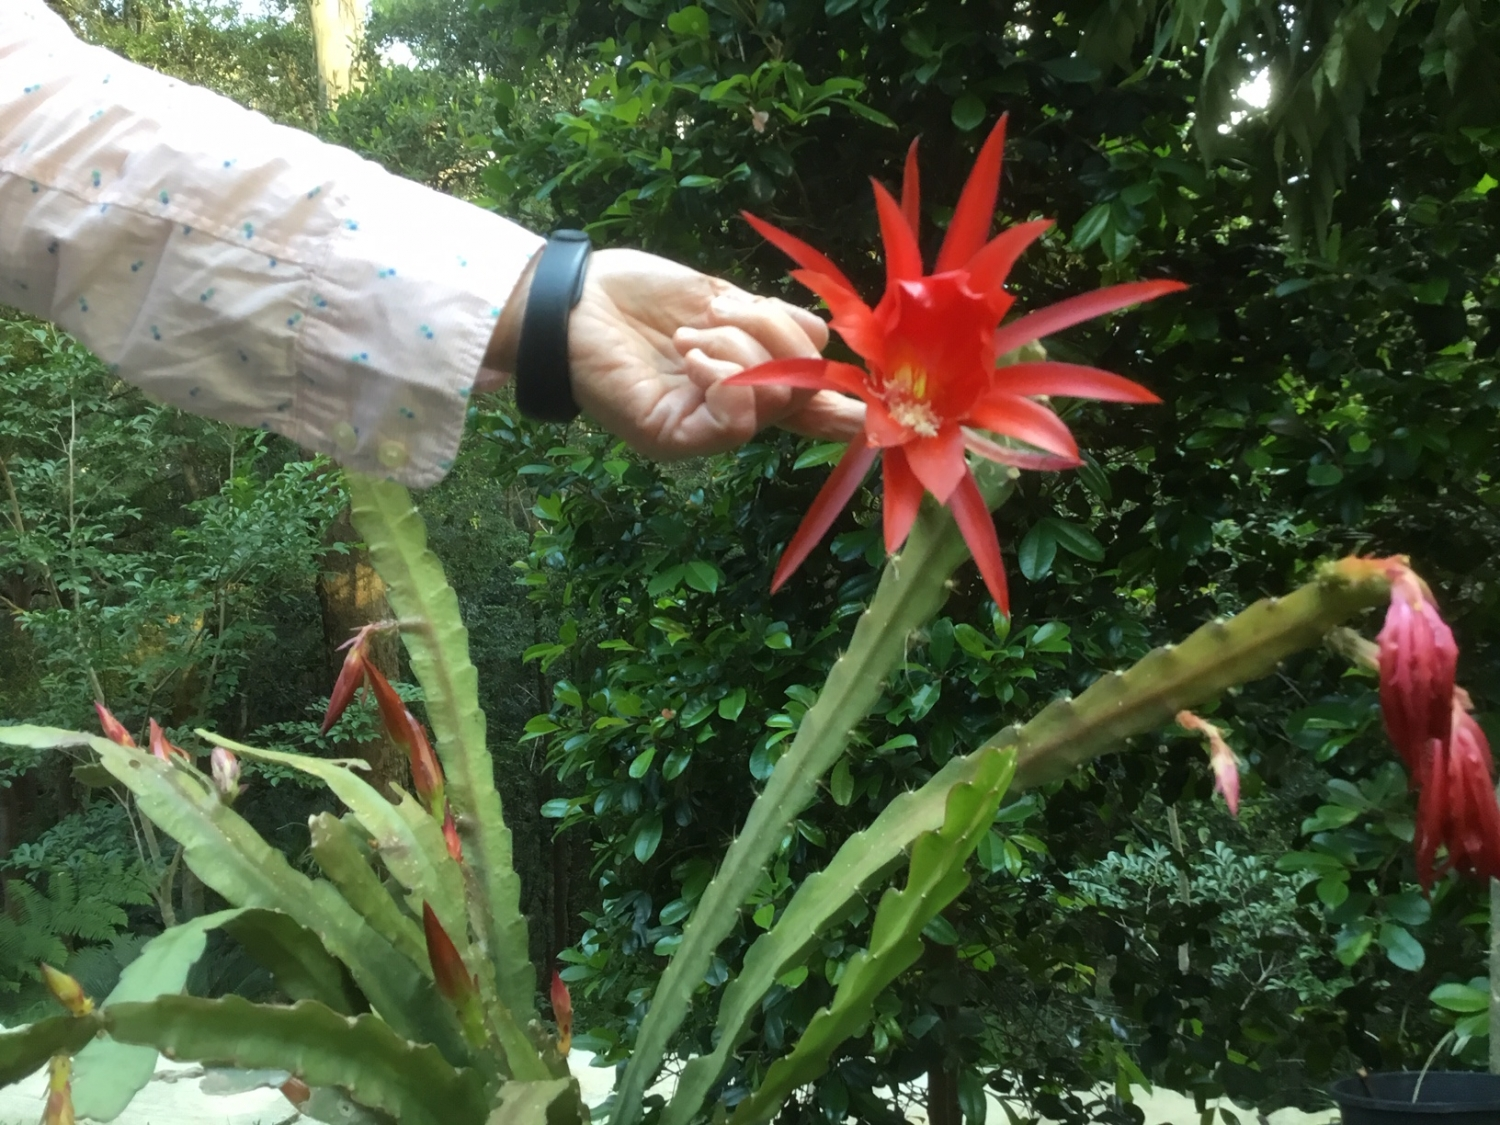 Arm extended with hand holding red spiky flower head.